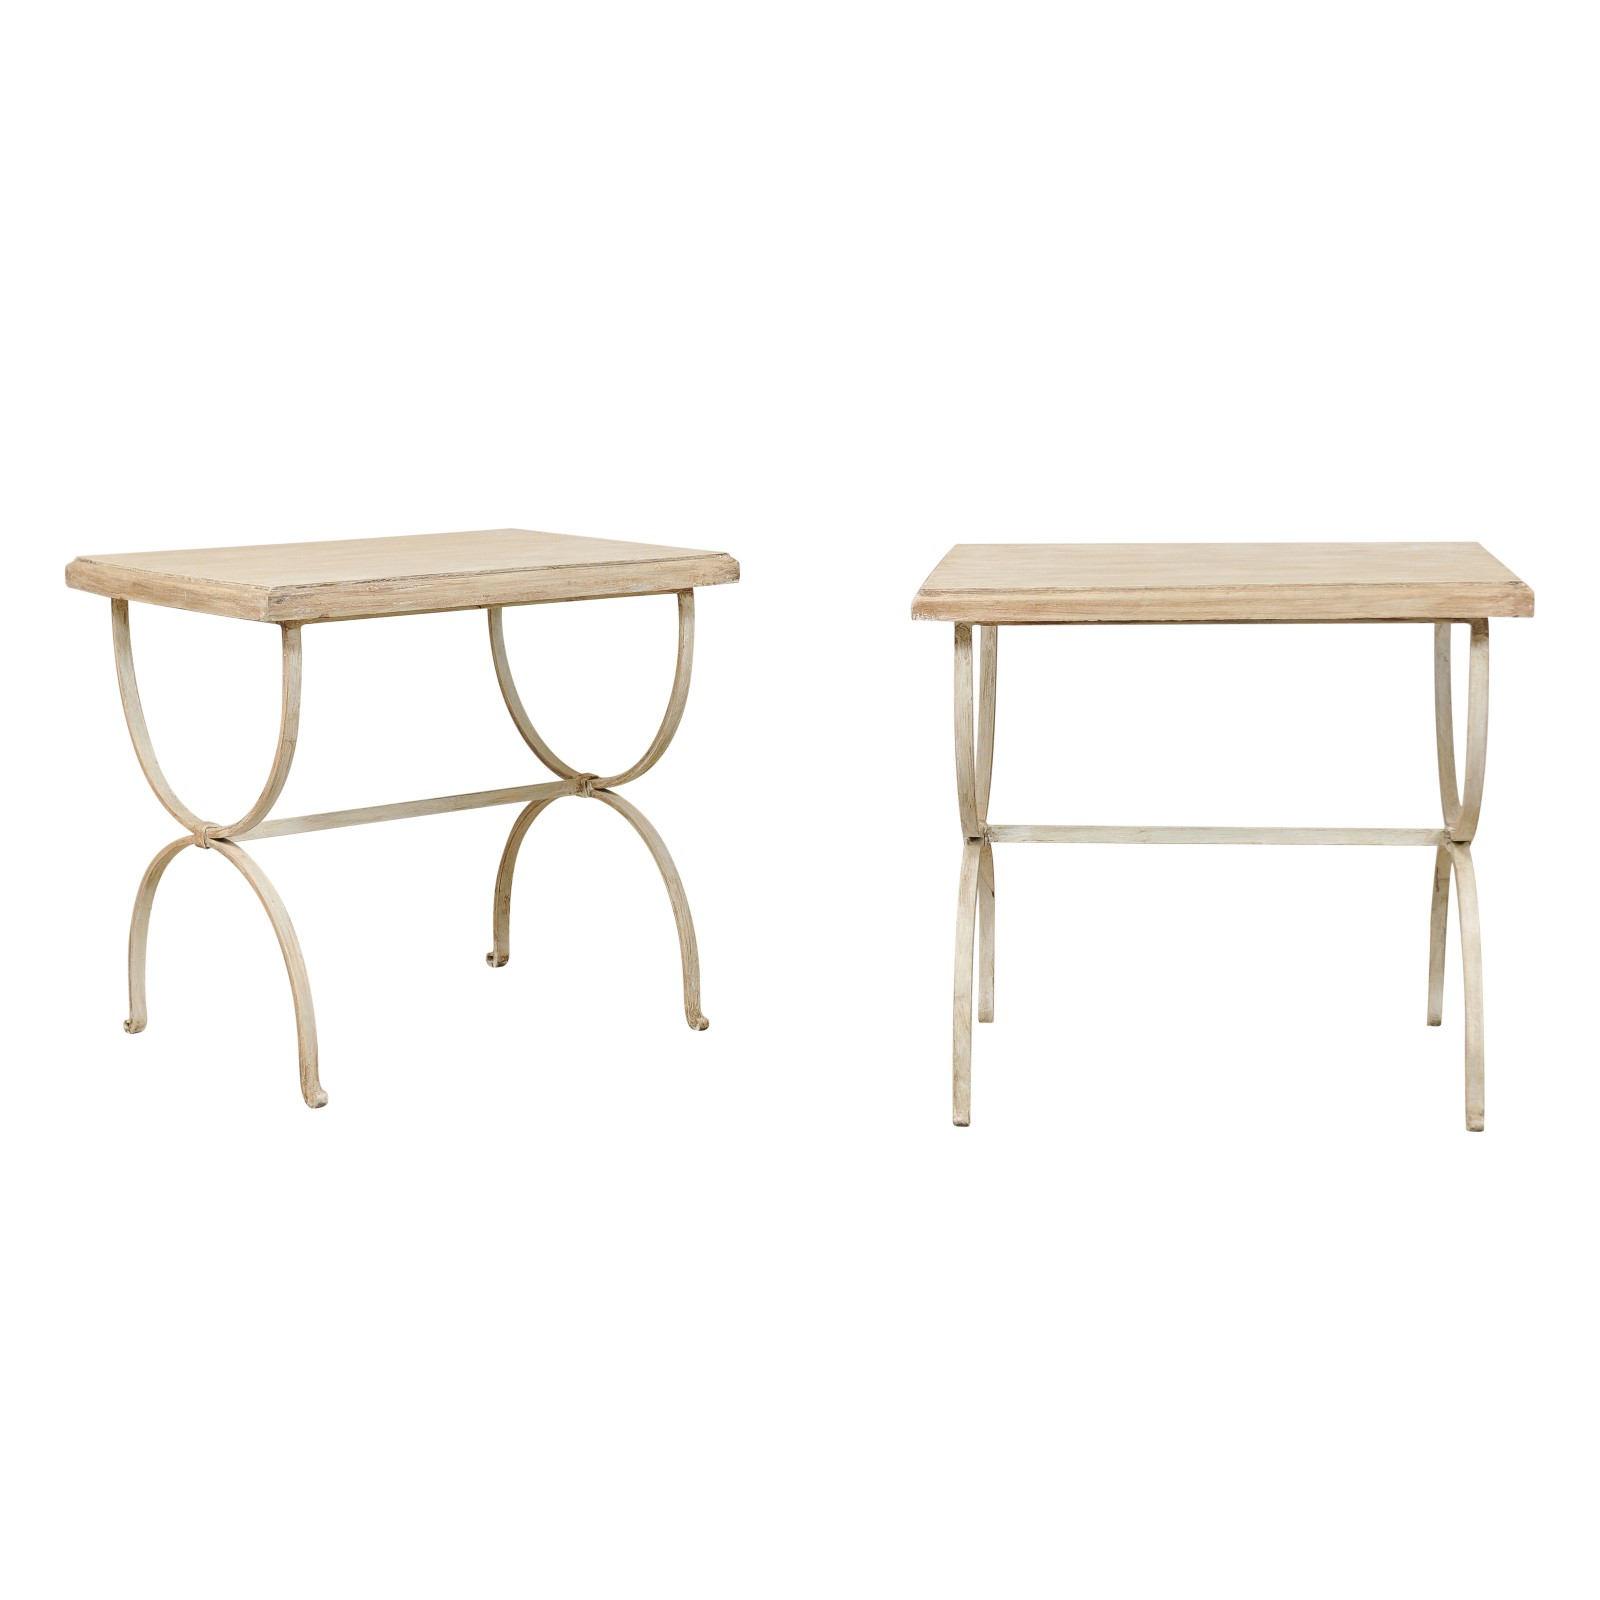 Painted Wood & Iron Side Tables